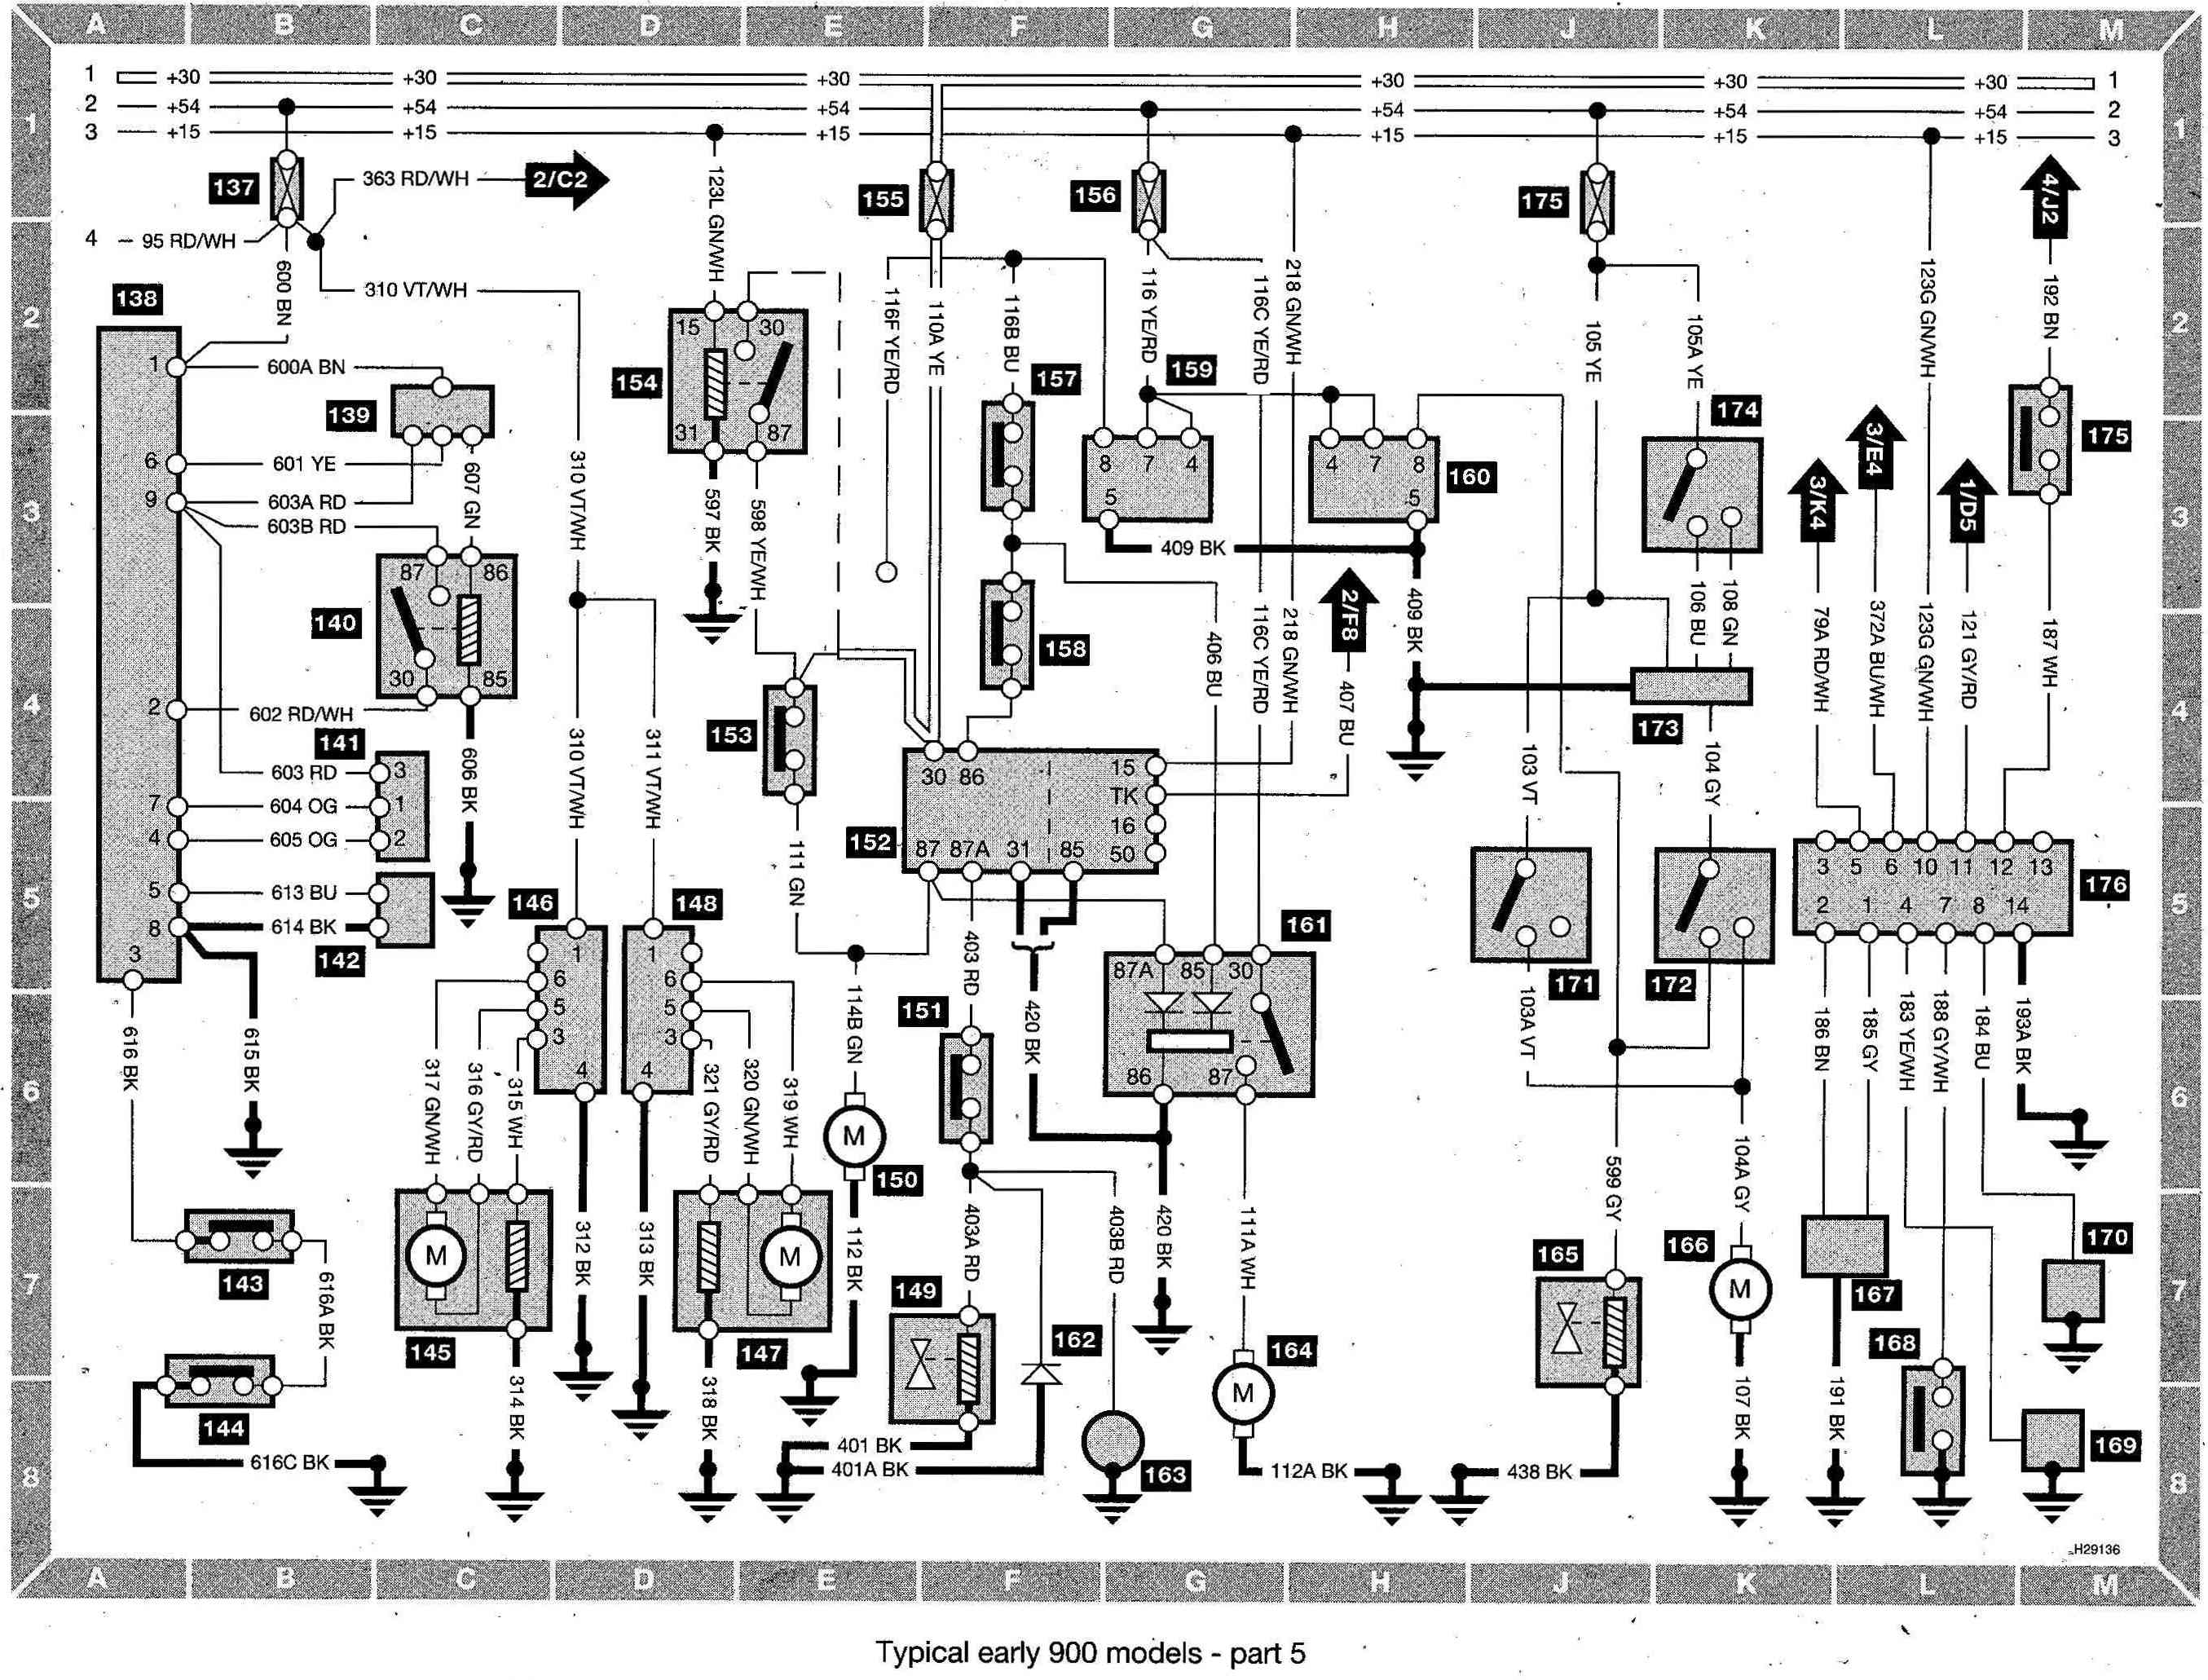 2004 saab 9 3 wiring diagram schematics online 2004 Saab 9 5 Wiring Diagram saab ignition diagram wiring diagram